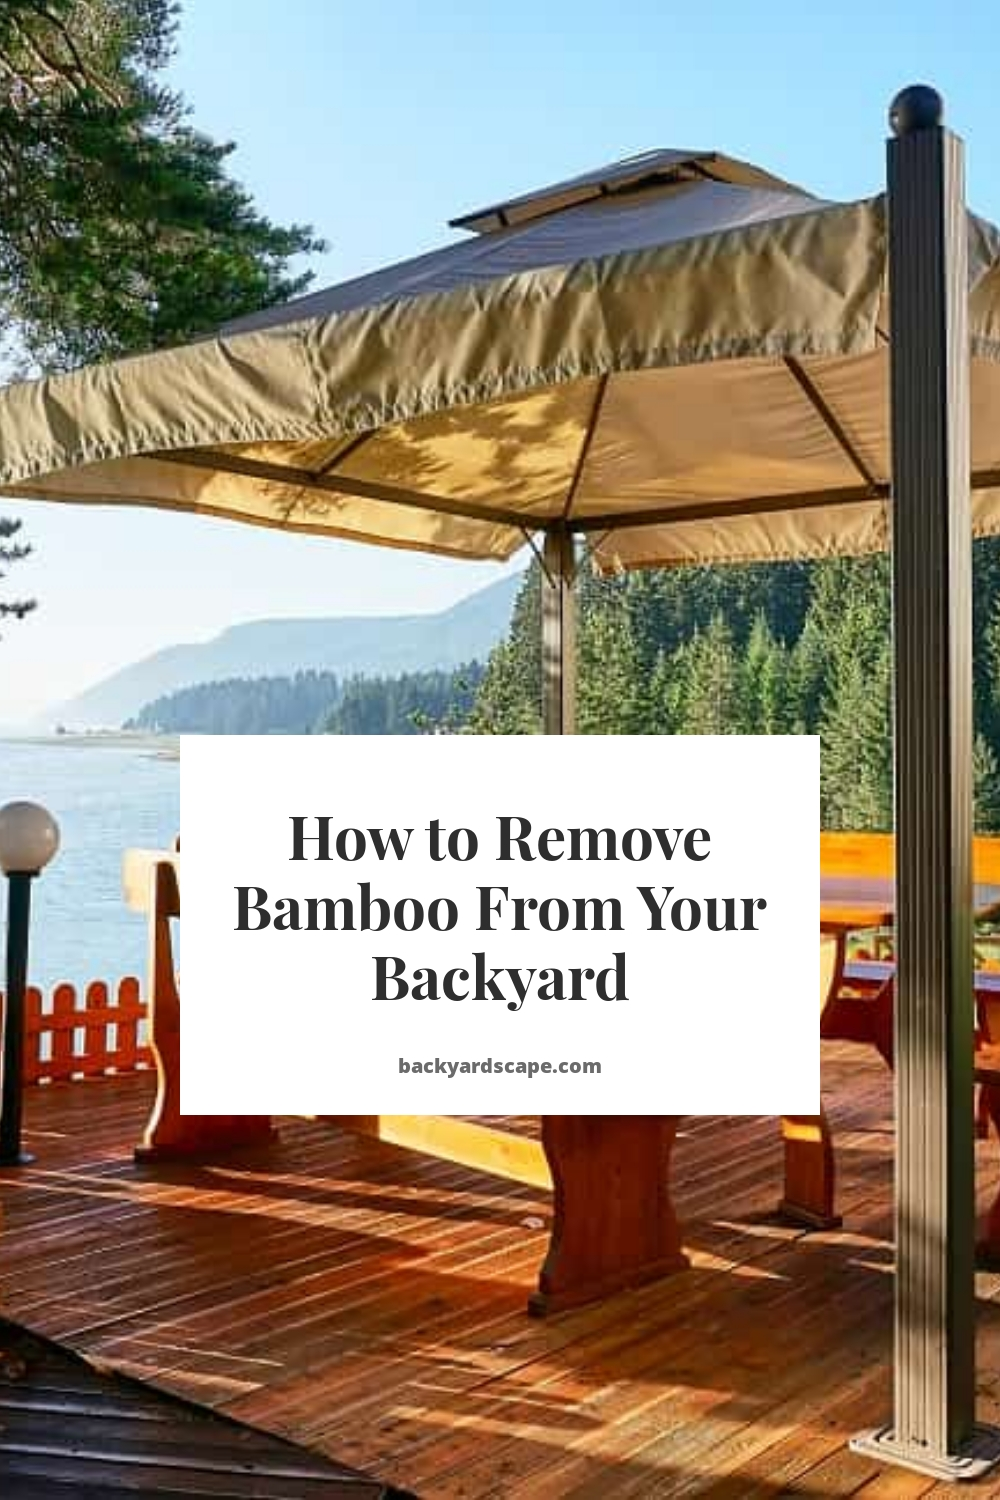 How to Remove Bamboo From Your Backyard